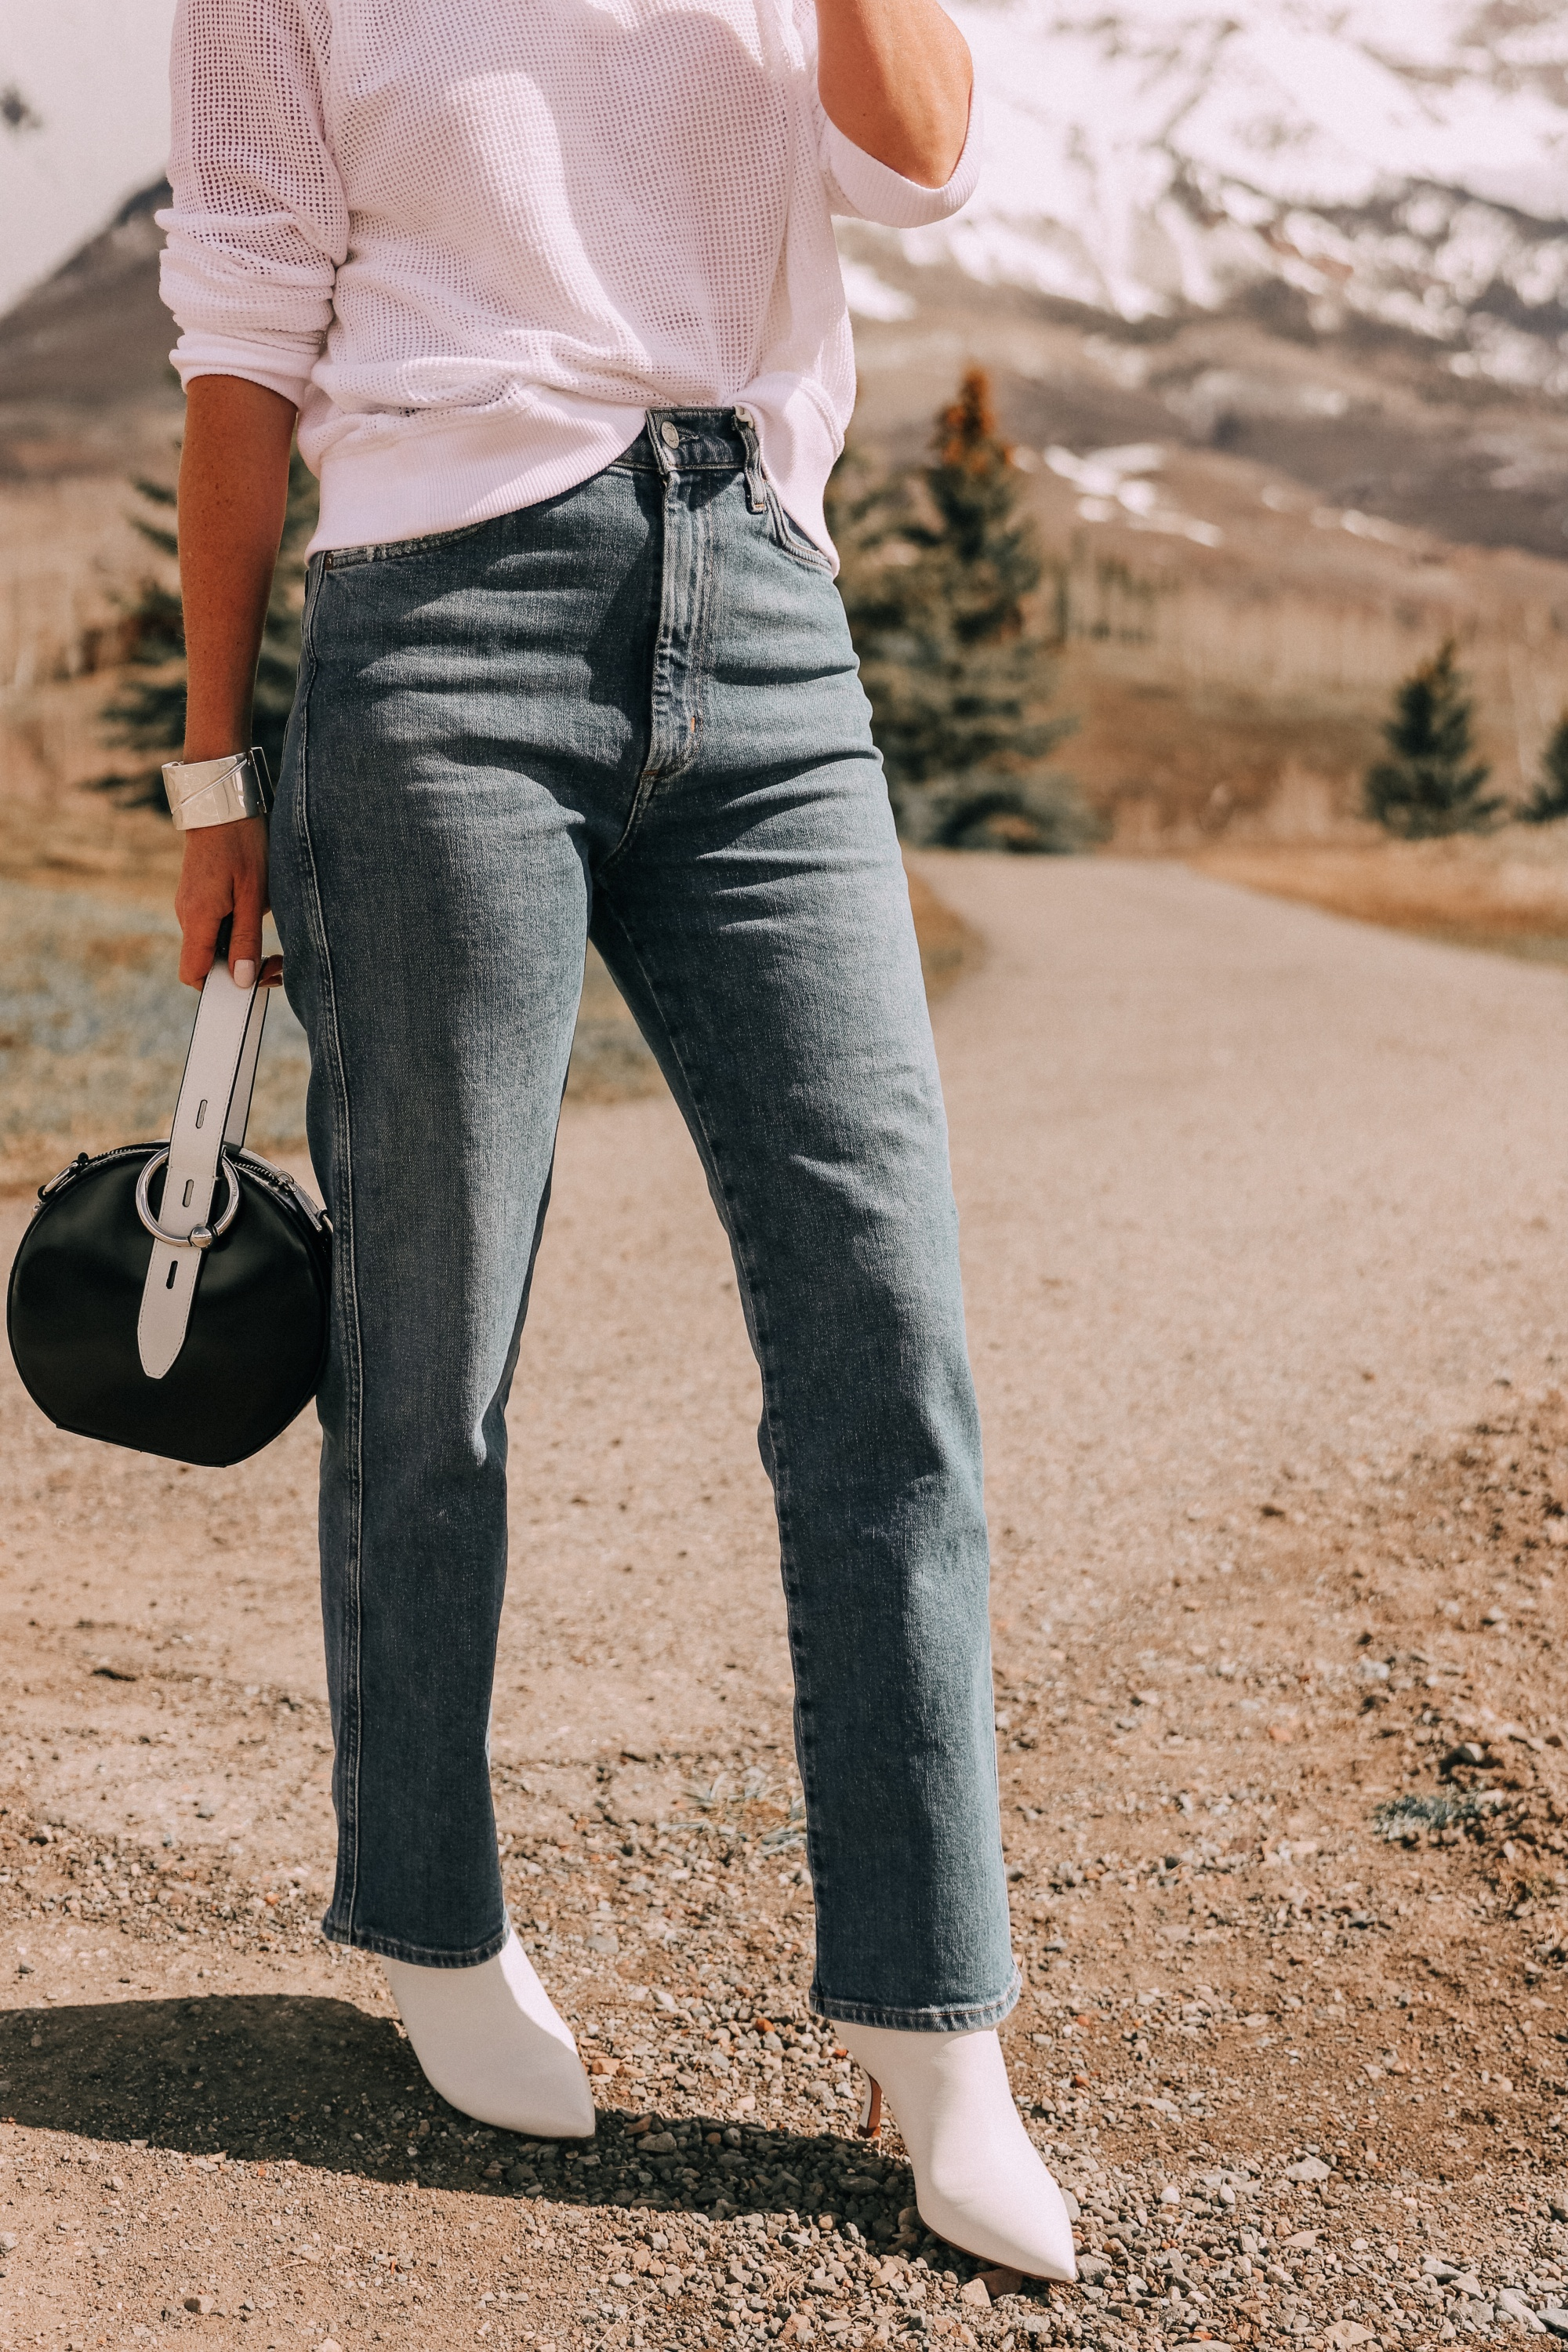 Lightweight Sweater For Summer, Fashion blogger Erin Busbee of BusbeeStyle.com wearing a white sweater by Eileen Fisher, with AGOLDE jeans, white Stuart Weitzman booties, and a black and white Rebecca Minkoff bag from Bloomingdale's in Telluride, CO